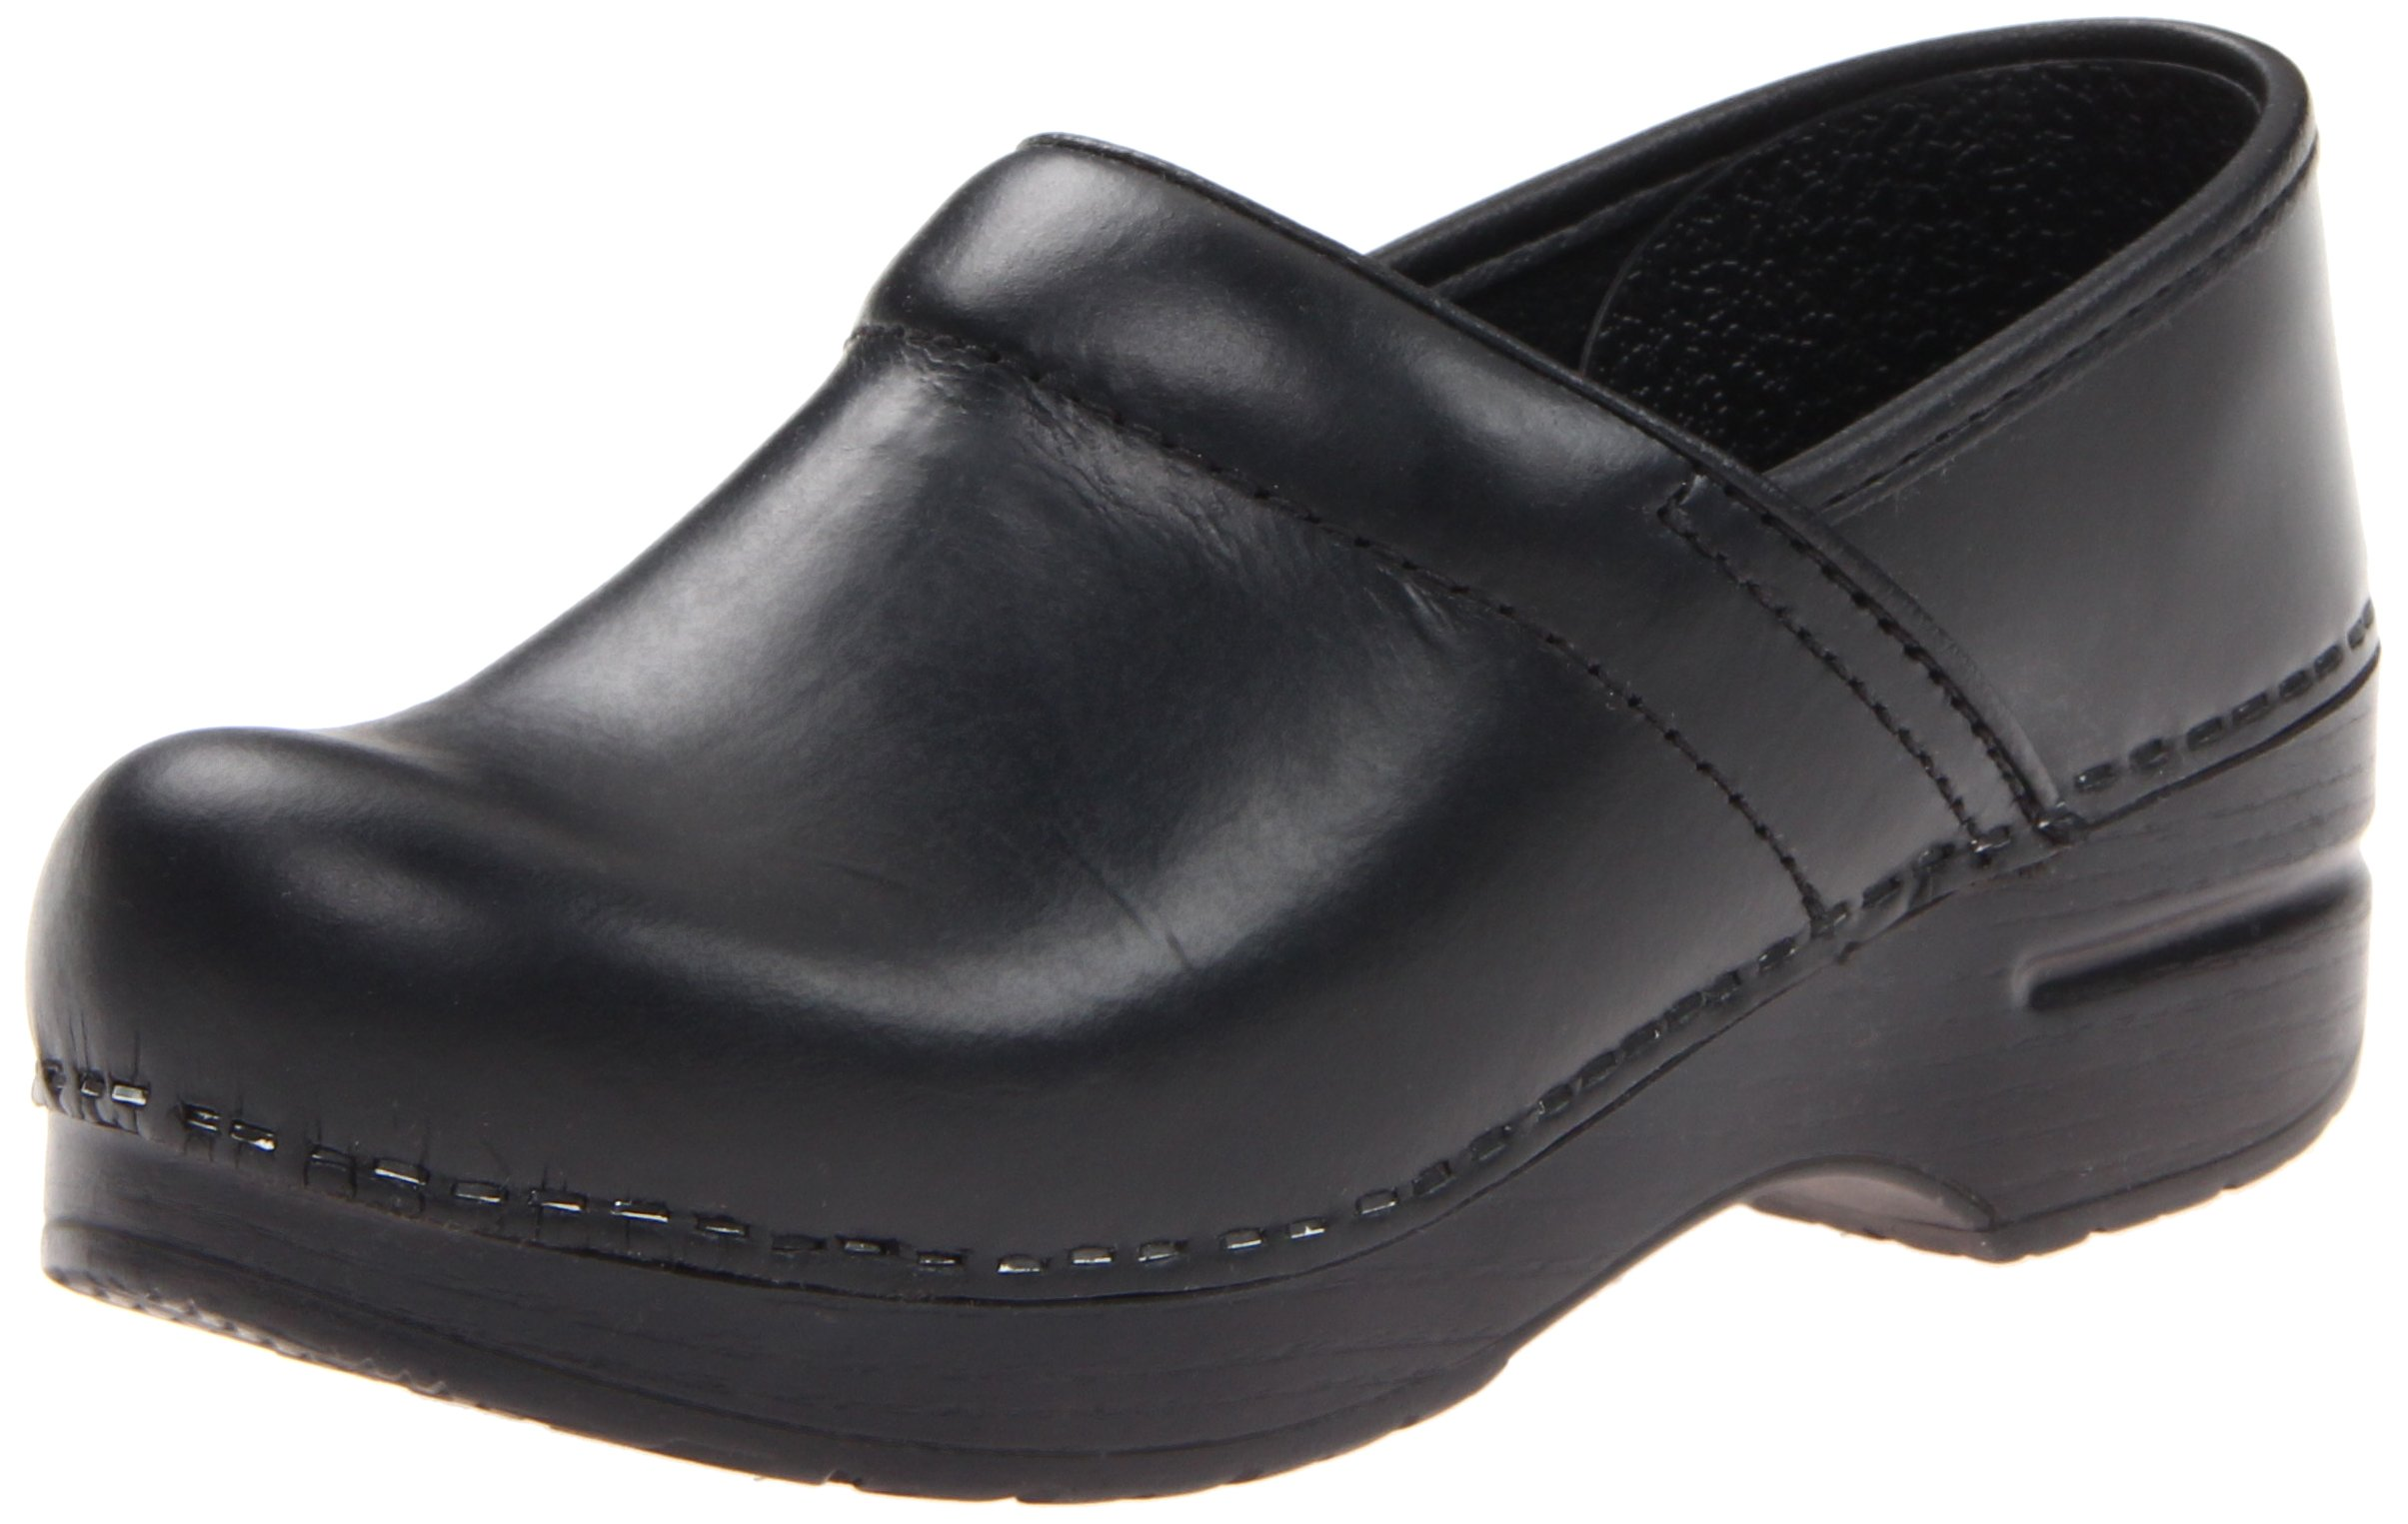 Dansko Professional Narrow Clog,Black,39 EU